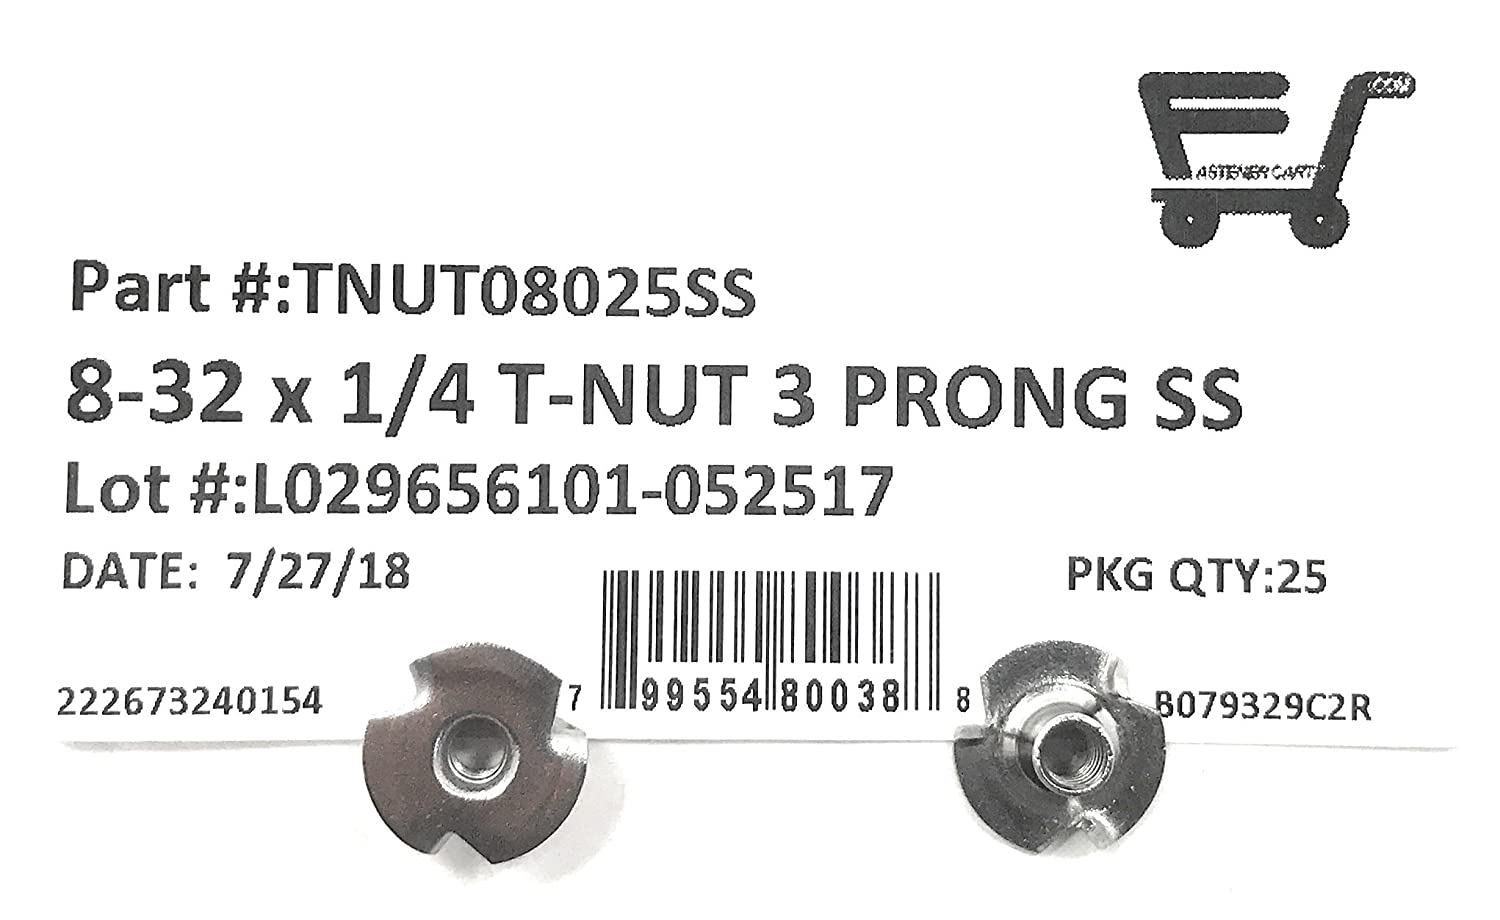 25 #8-32 Thread 1//4 Barrel Length T-NUT Stainless Steel 8-32x1//4 3 Prong Tee Nuts 18-8 Stainless - Pieces